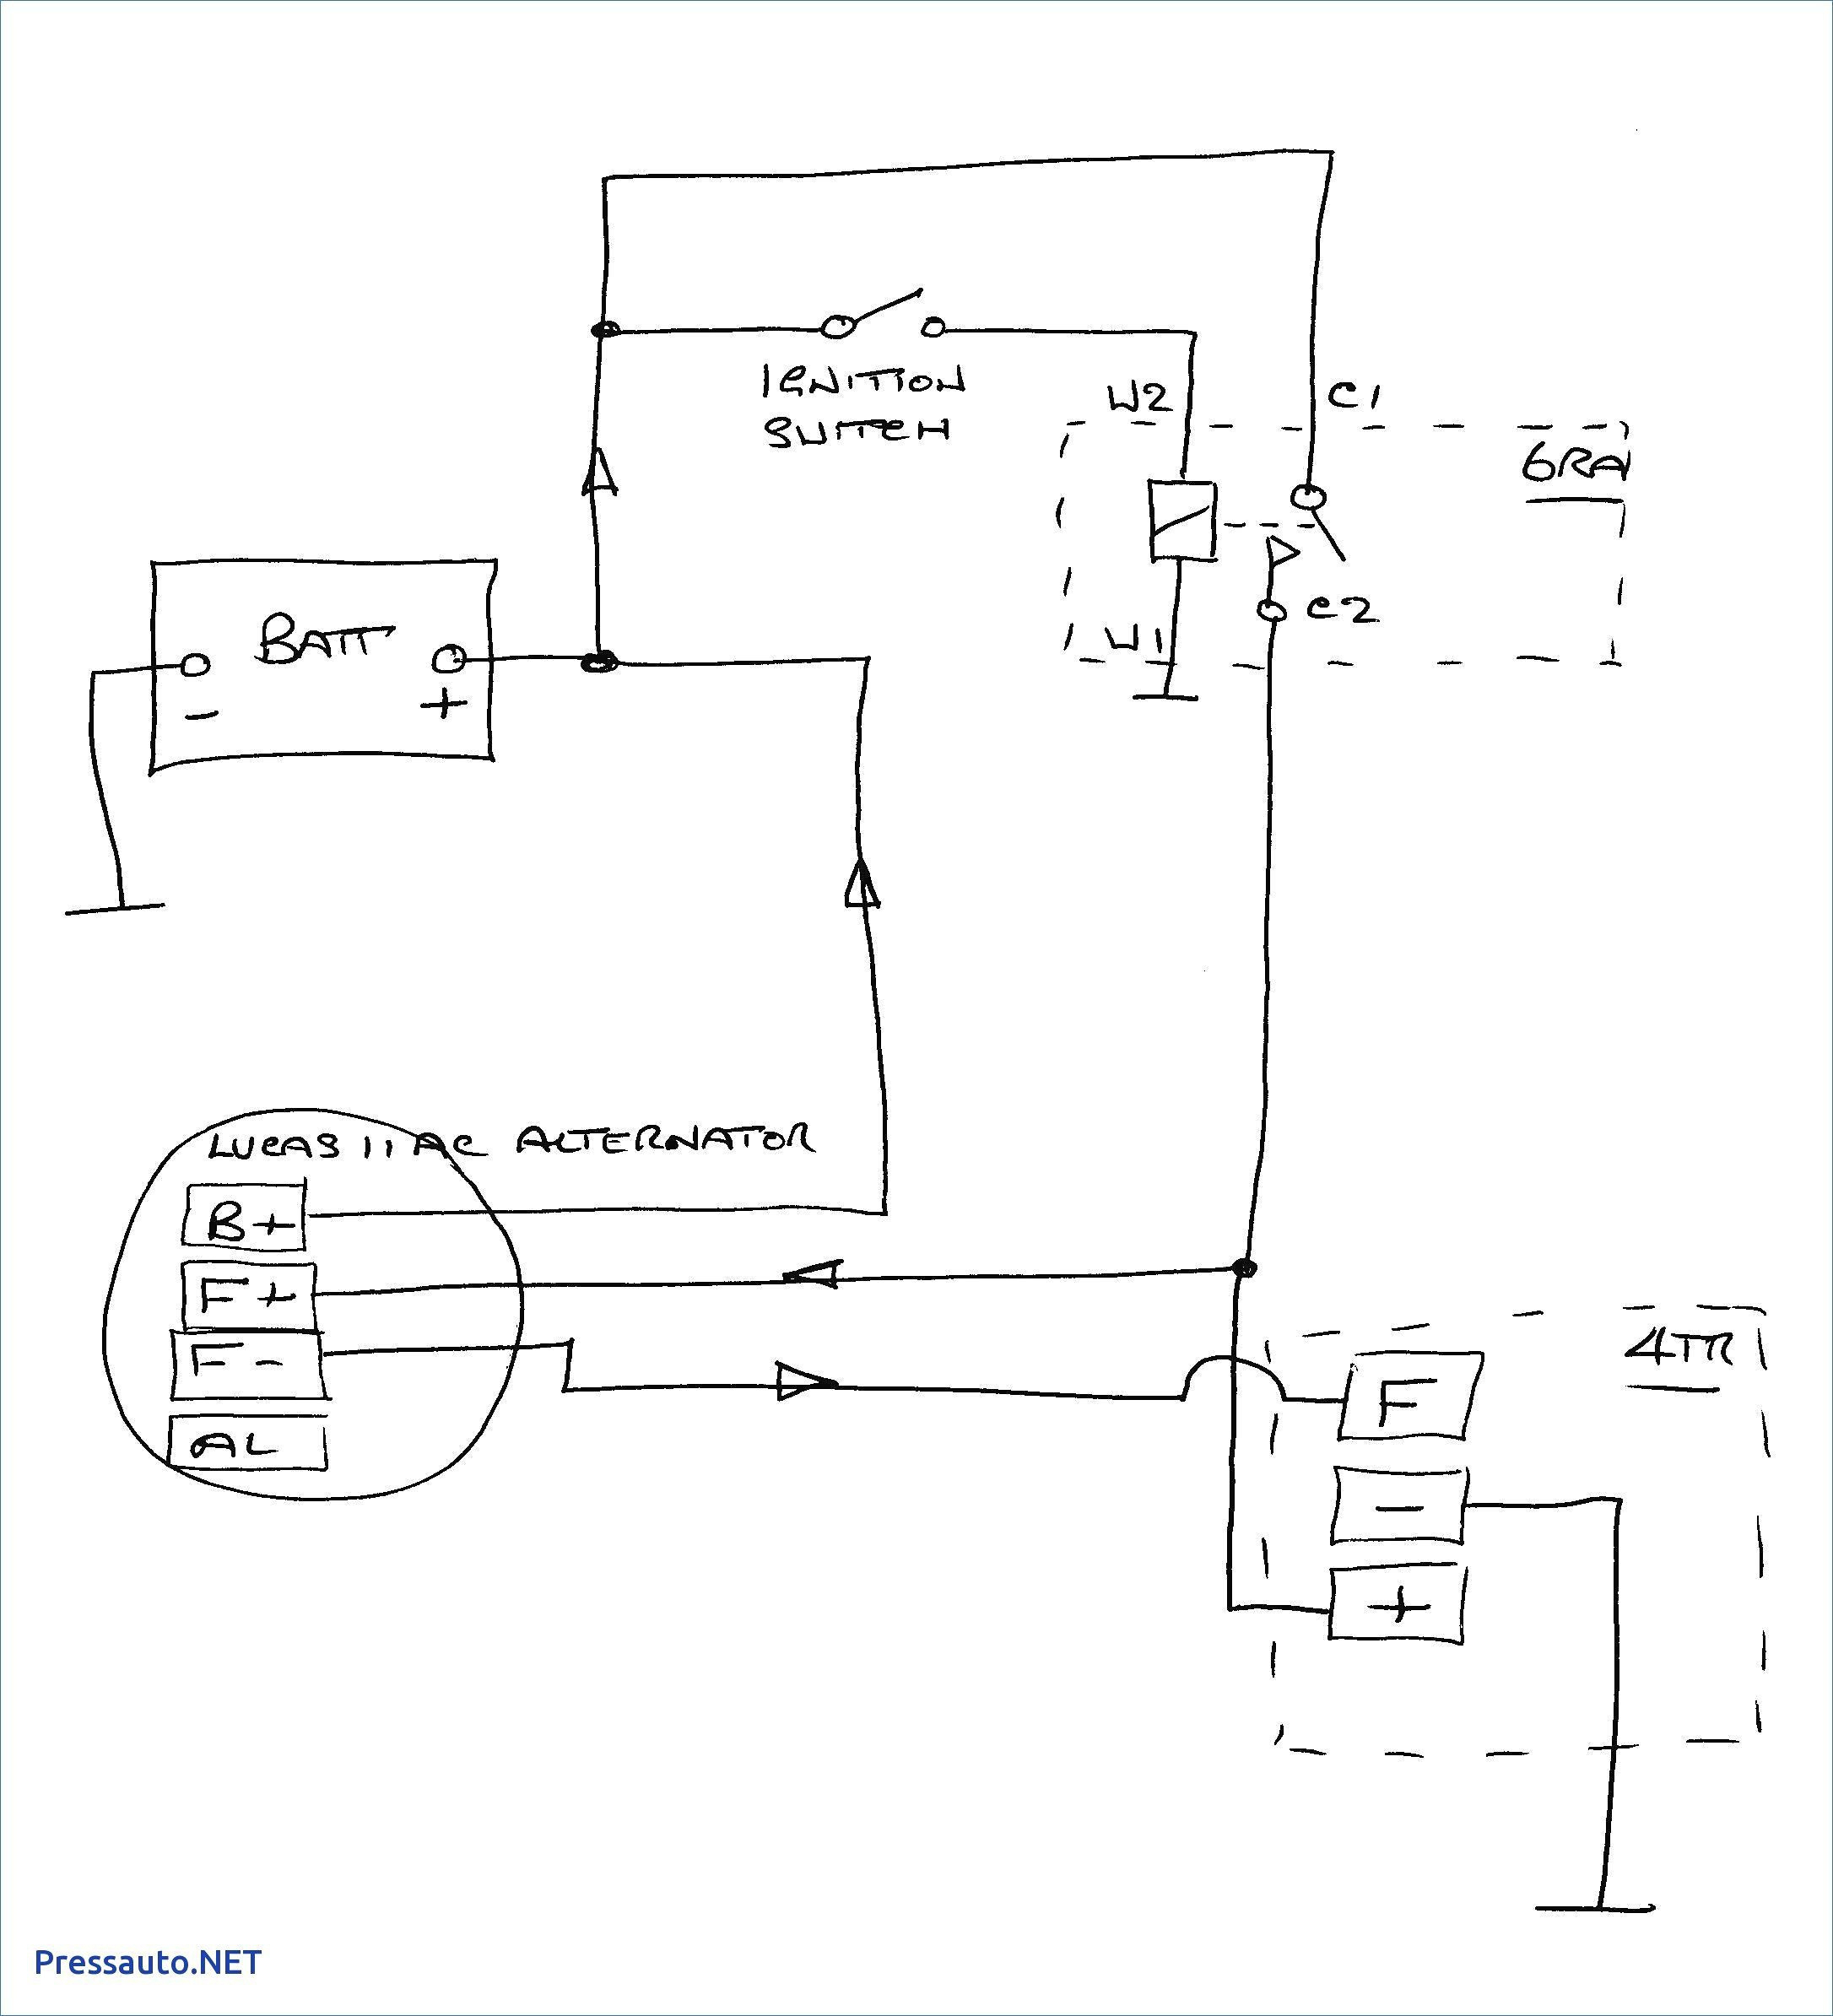 3 Wire Alternator Wire - Data Wiring Diagram Today - 12 Volt Alternator Wiring Diagram